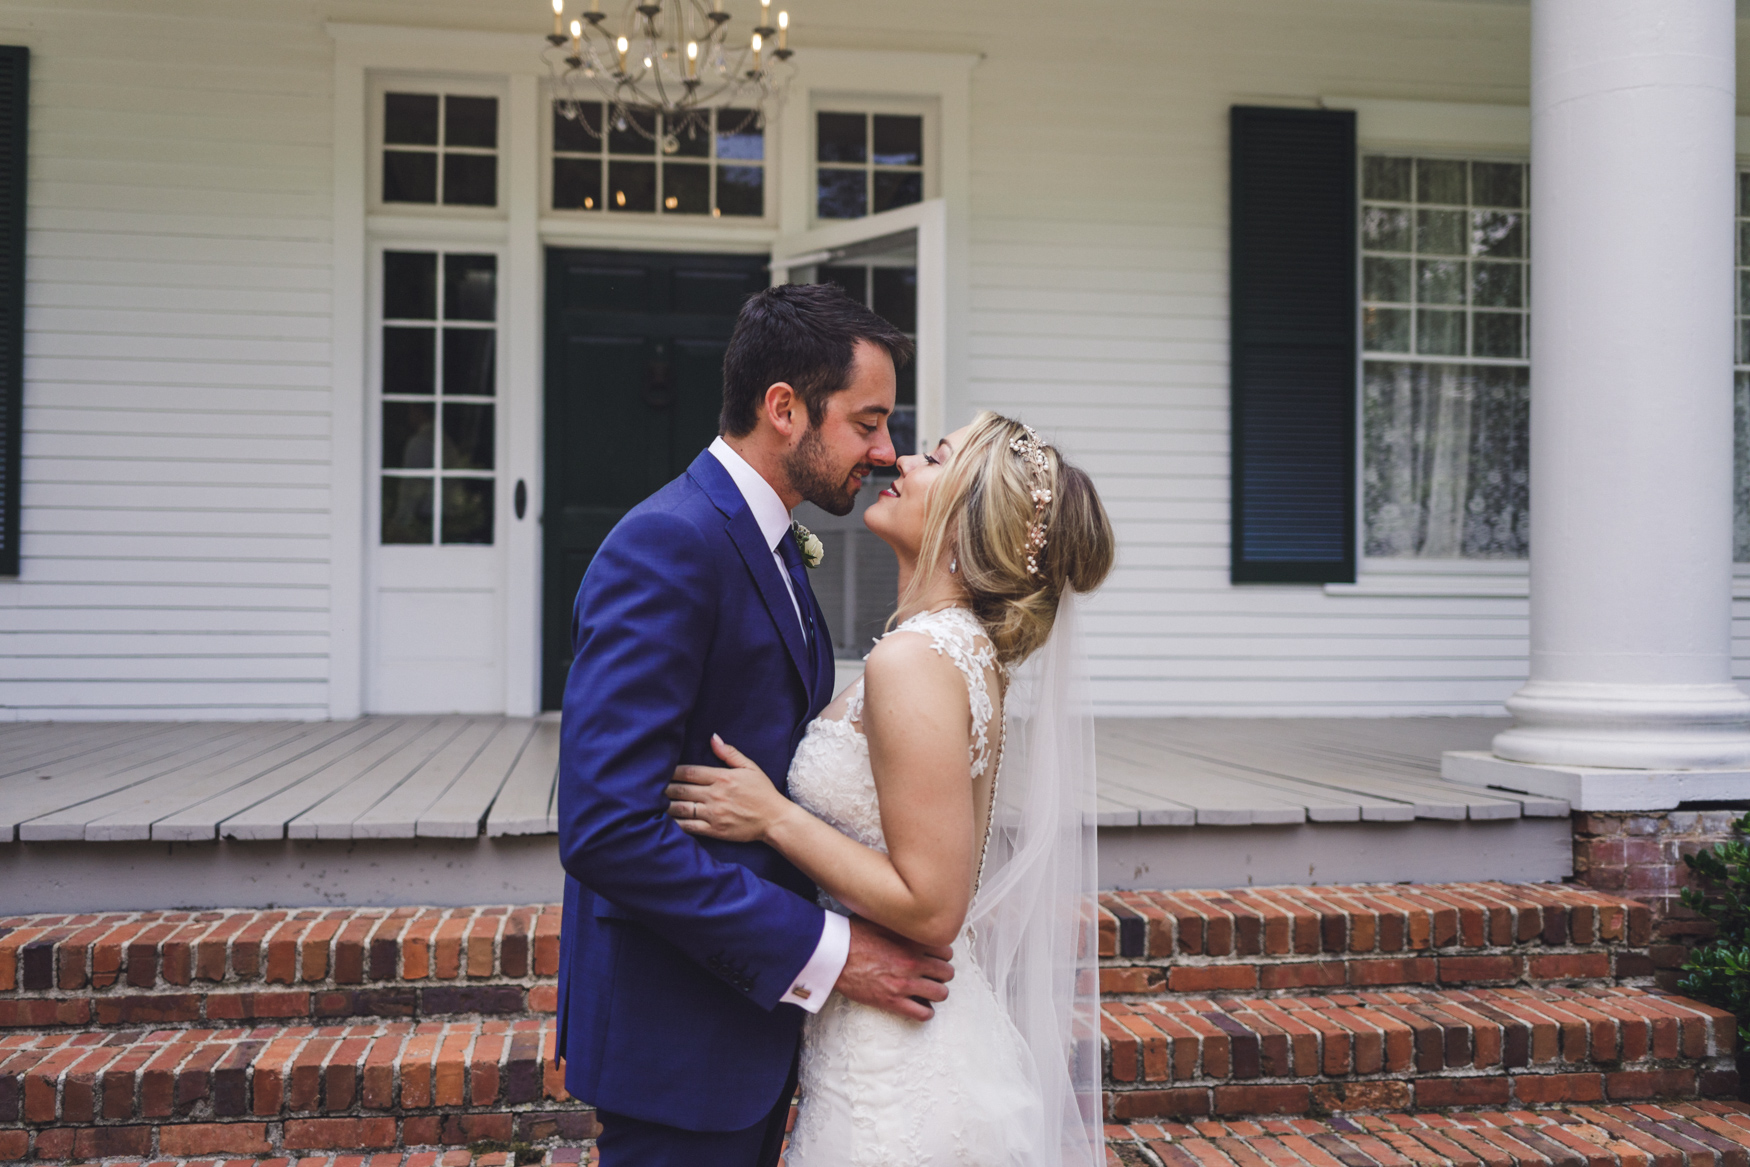 charlotte wedding photographer, destination wedding photographer, italian countryside wedding, milan wedding photographer,  north carolina wedding photographer, ogletree estates,